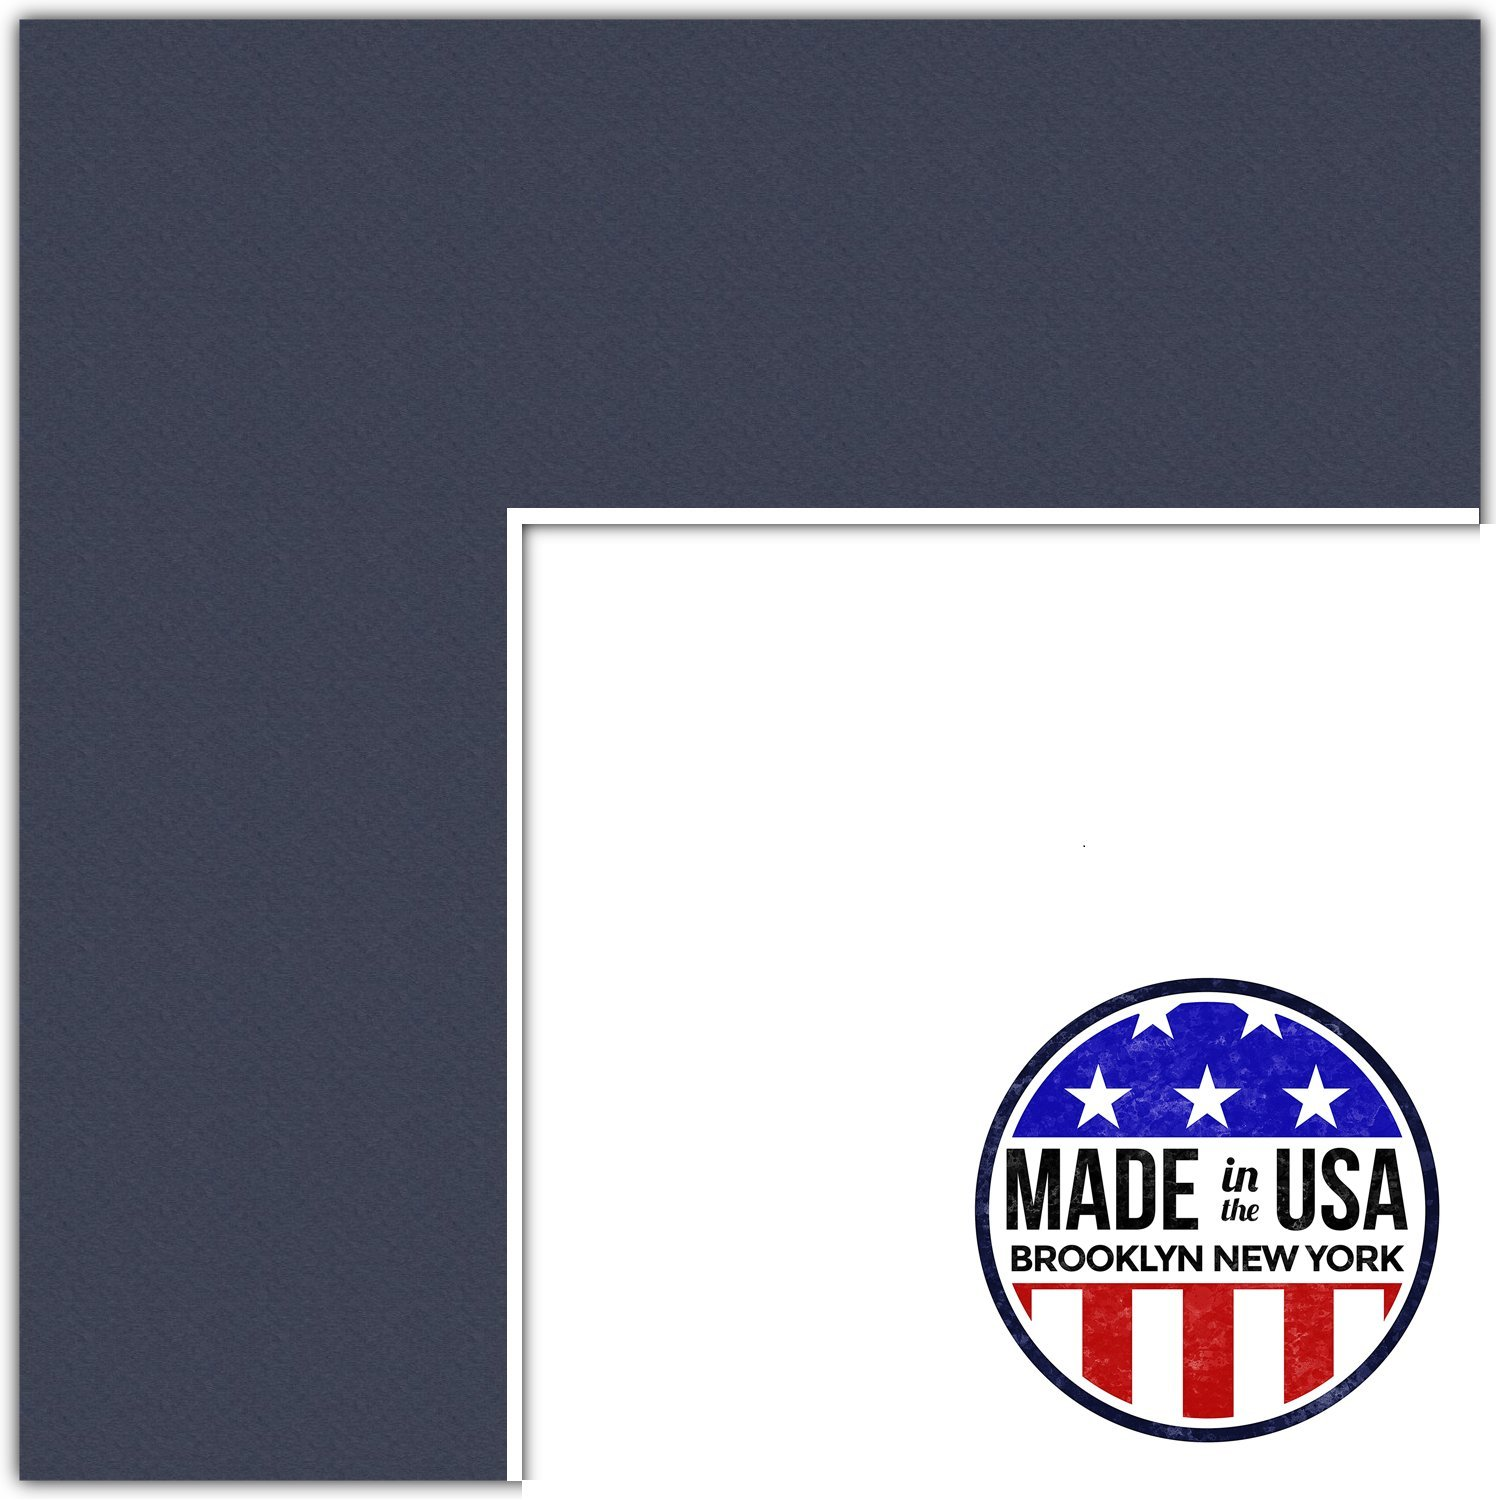 20x34 Midnight Blue / Blue Jay Custom Mat for Picture Frame with 16x30 opening size (Mat Only, Frame NOT Included)